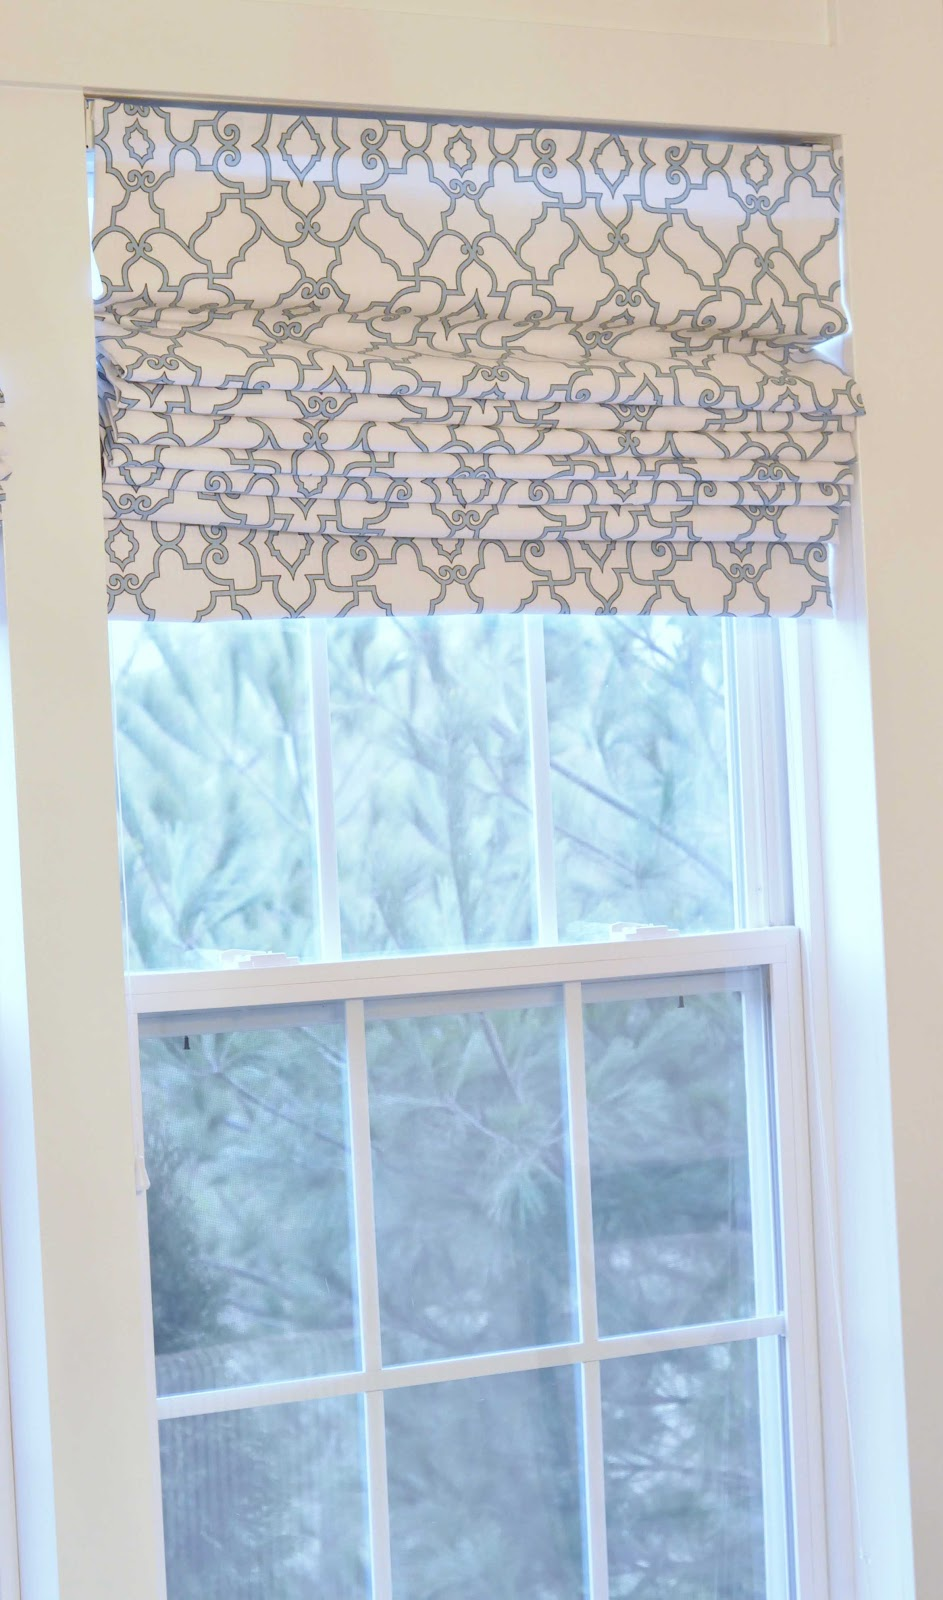 House Of Chic And Penoche Roman Shades From Big Blinds